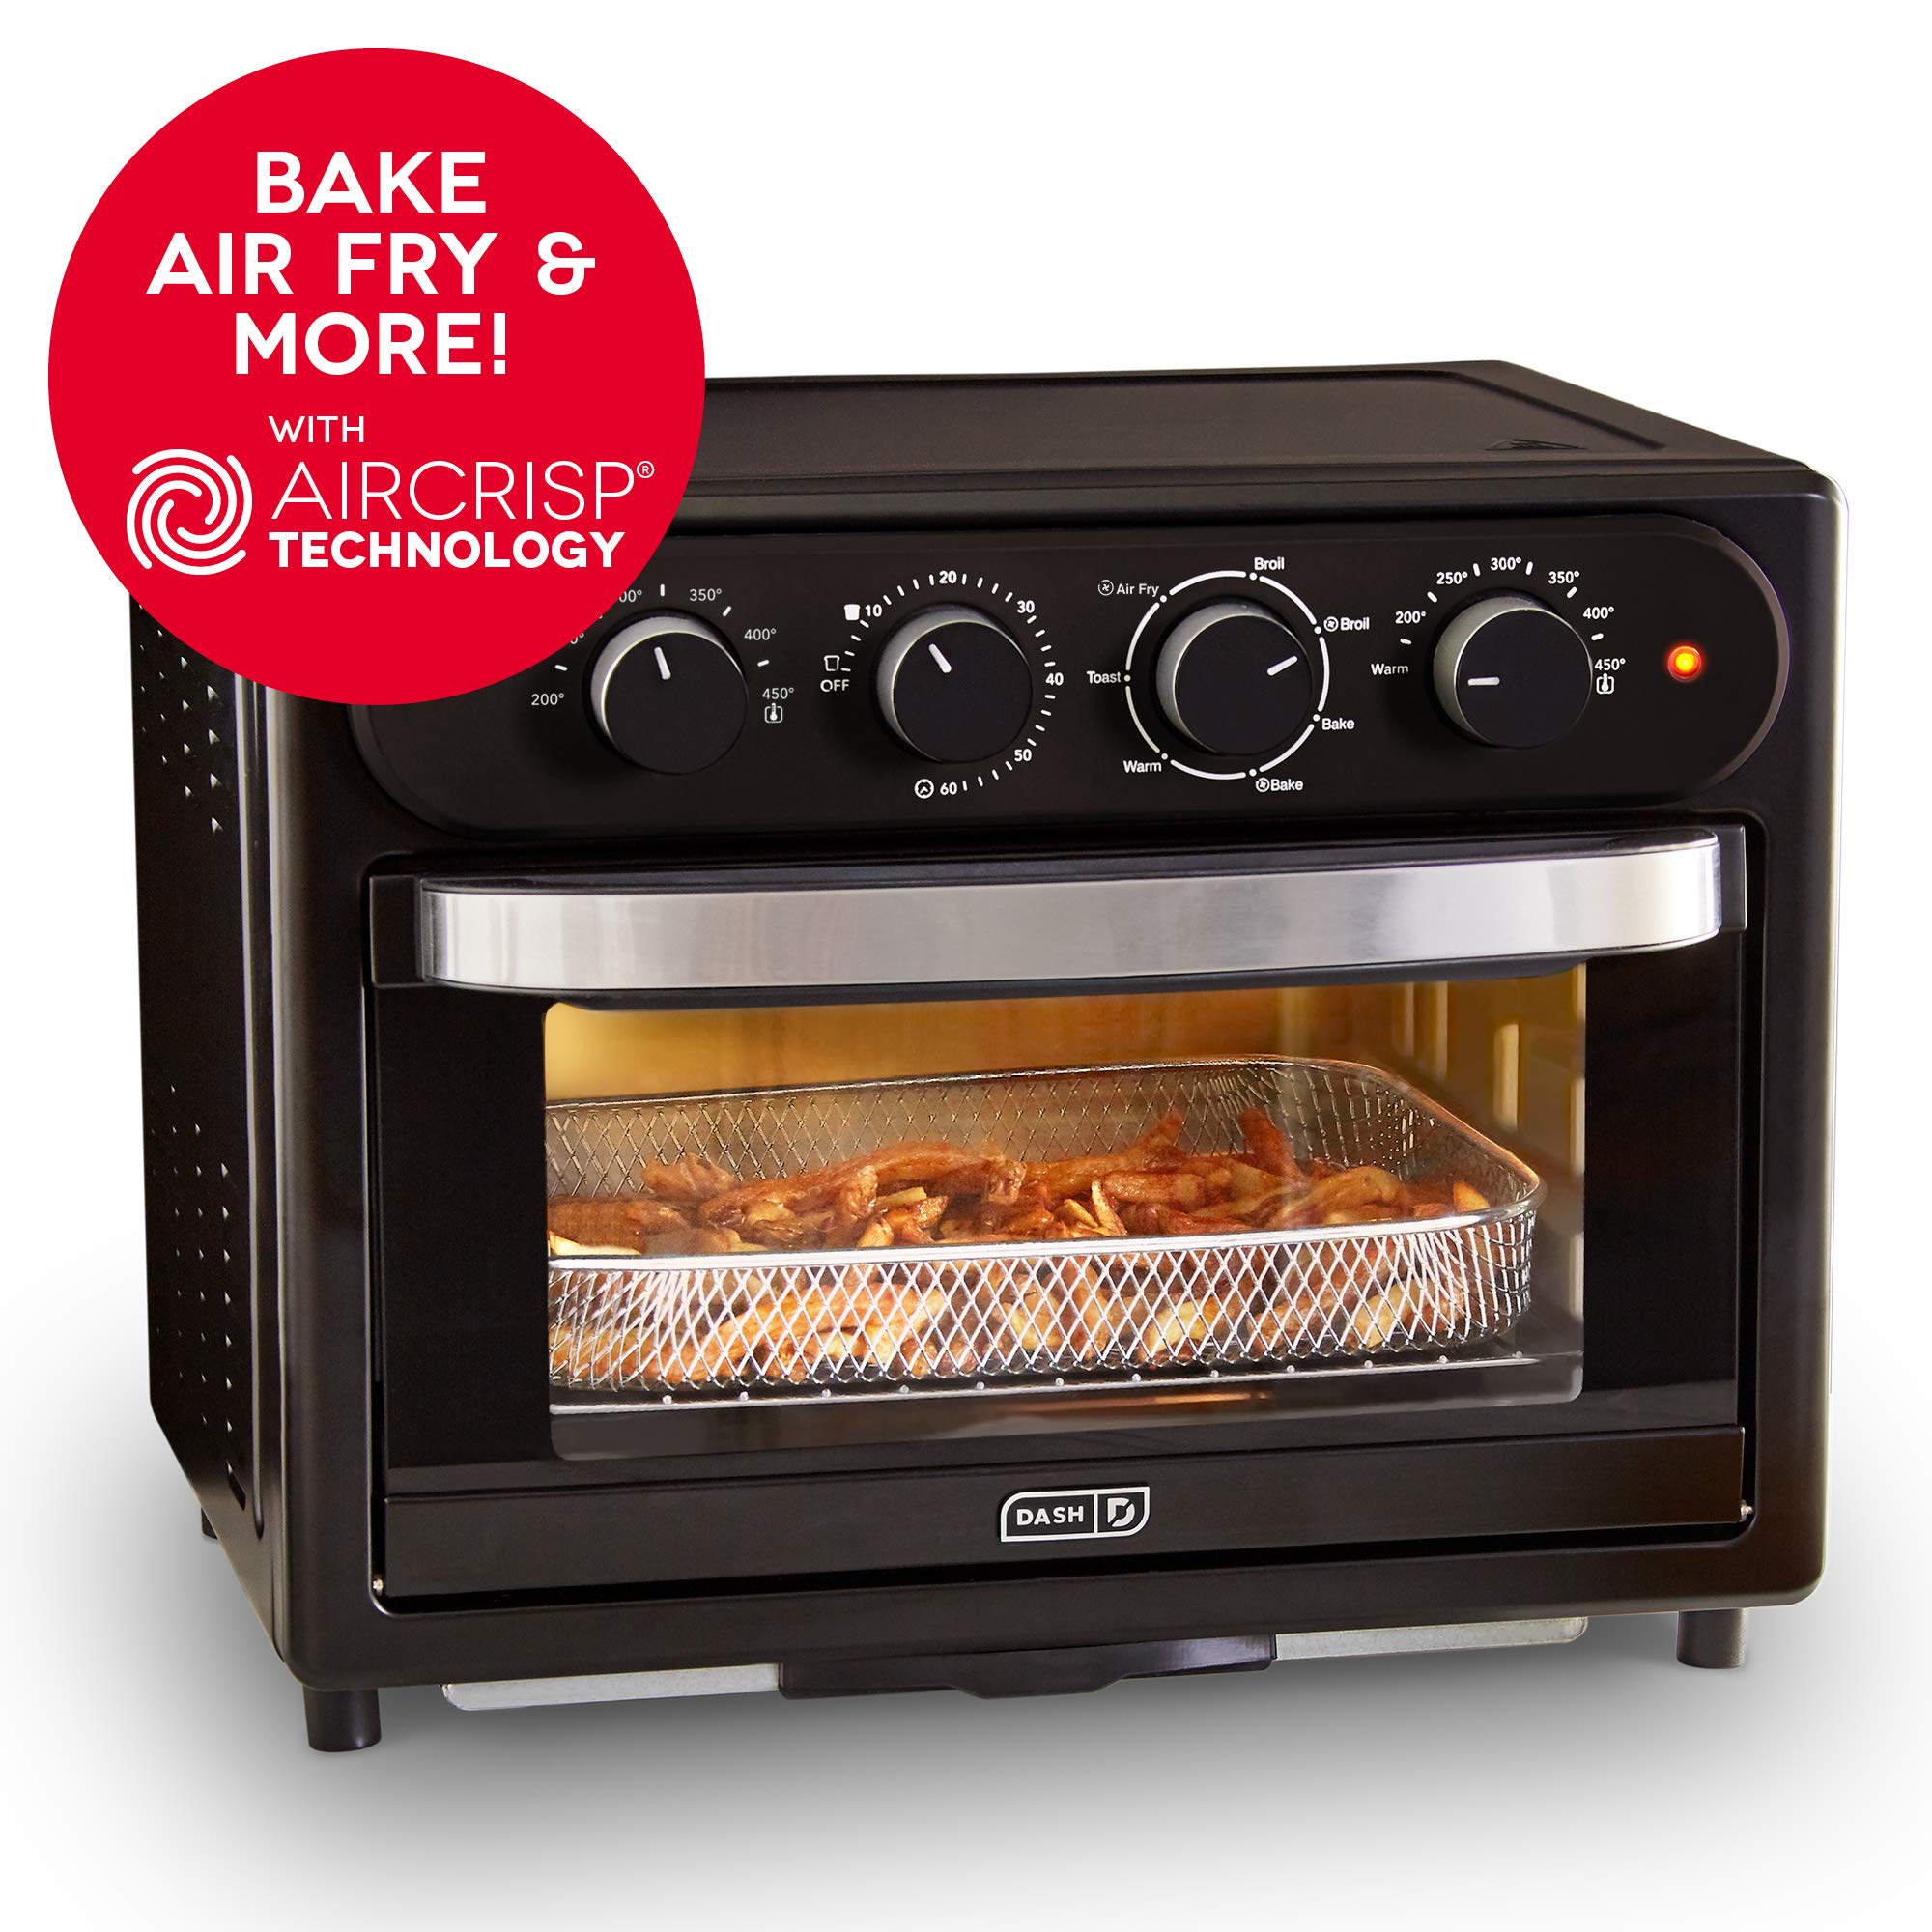 DASH DAFT2300GBBK01 Chef Series 7 in 1 Convection Toaster Oven Cooker, Broiler + Electric Air Fryer with Non-stick Fry Basket, Baking Pan & Rack, Drip Tray & Recipe Book, 23L, Matte Black